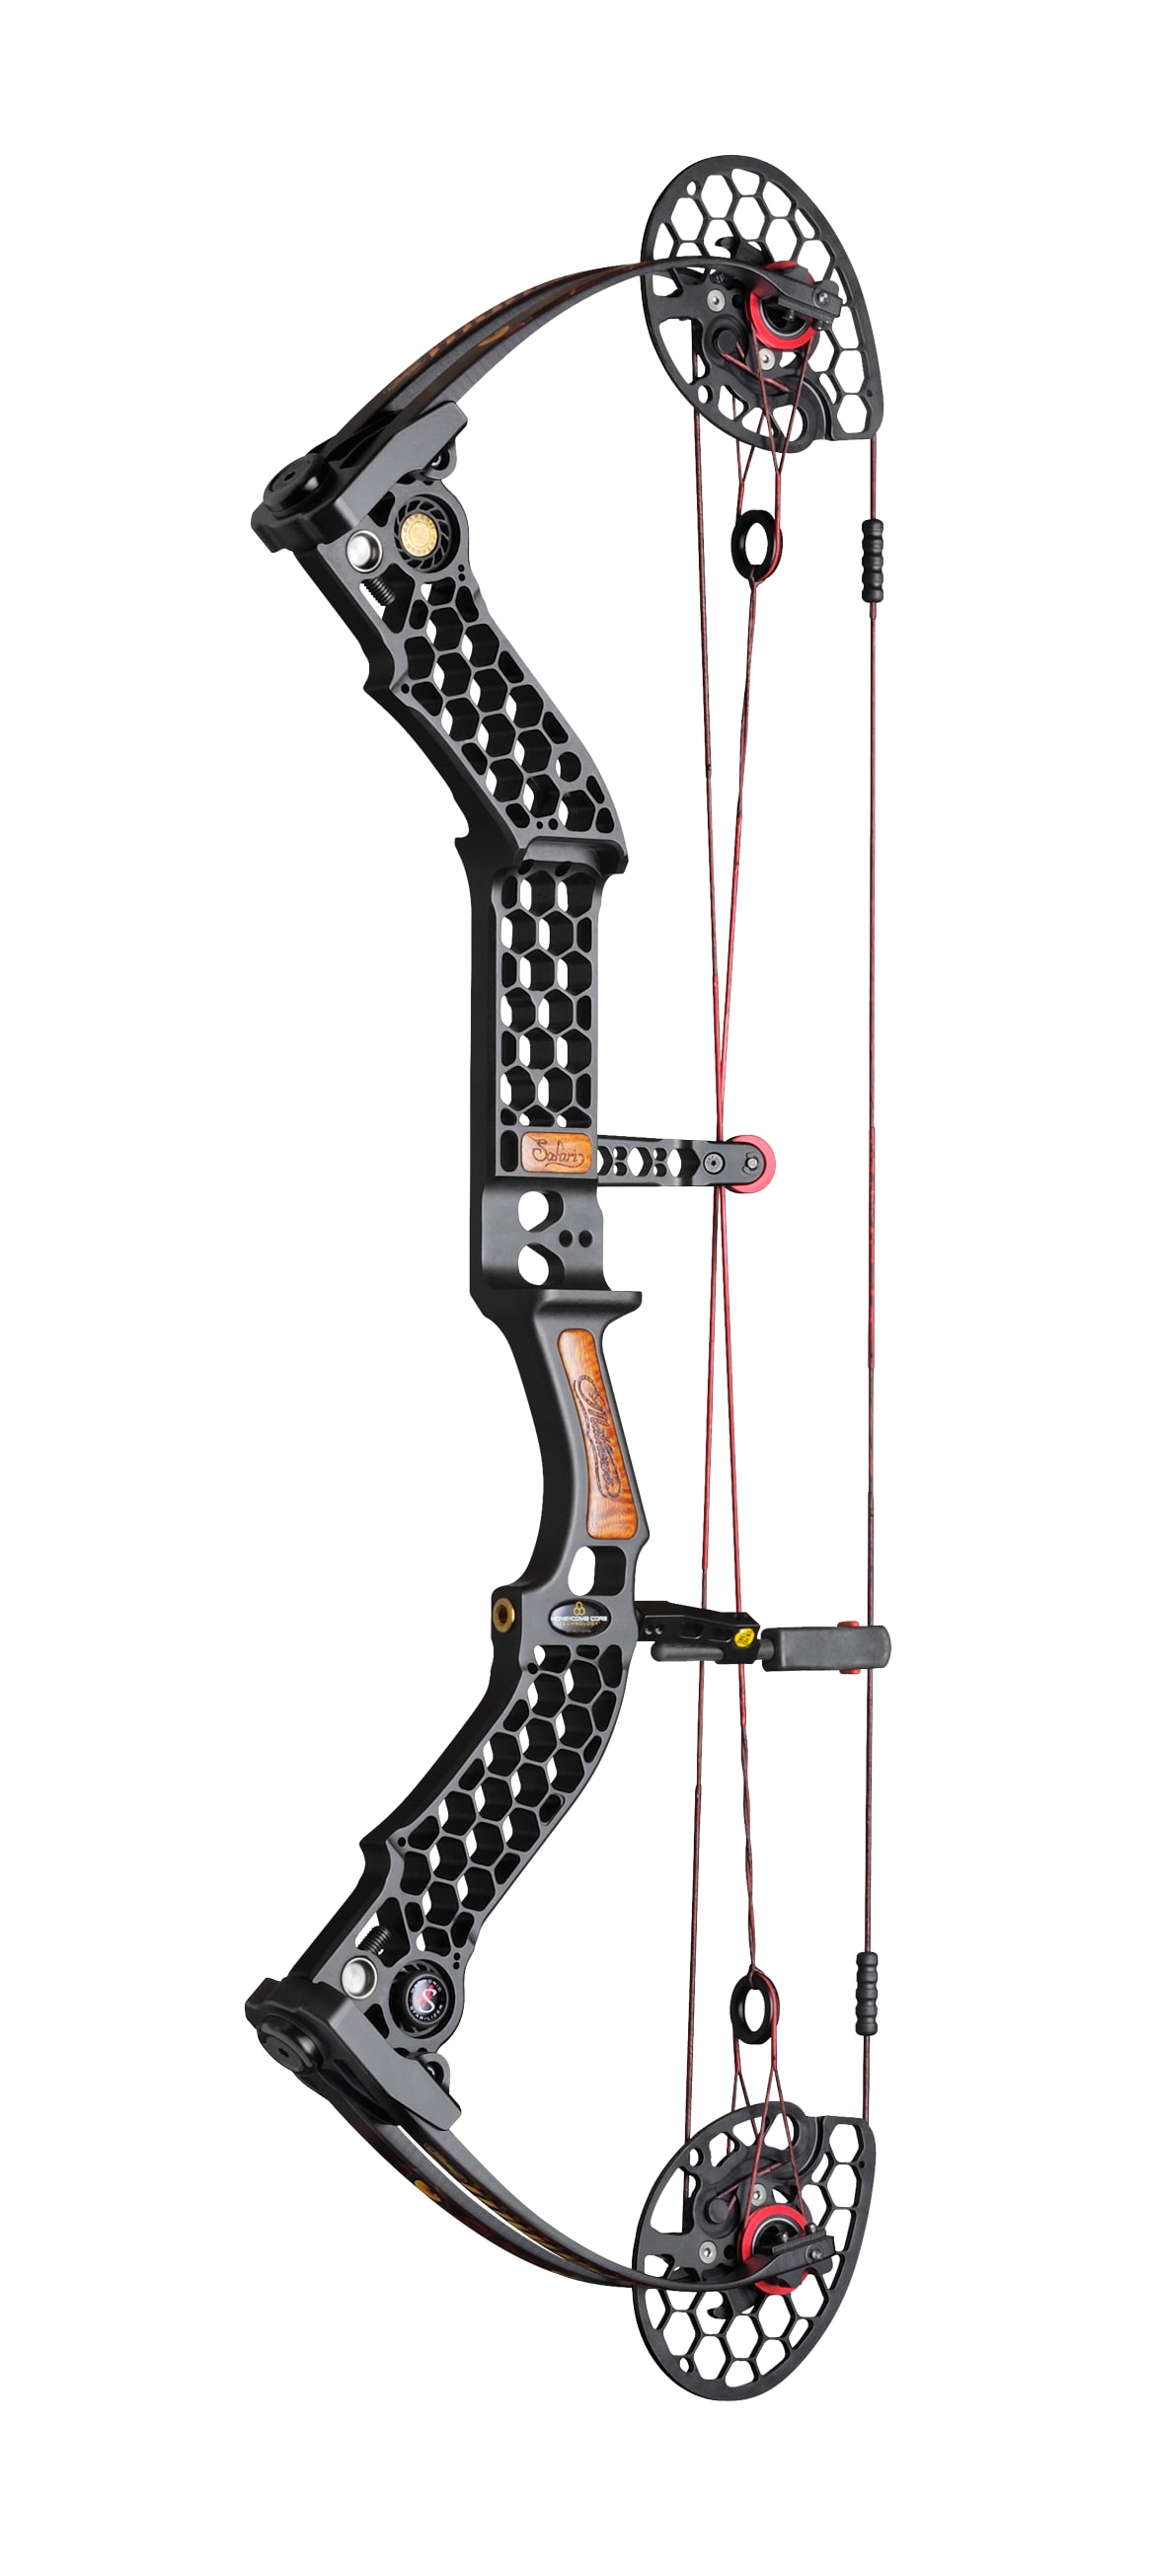 Mathews Monster Safari